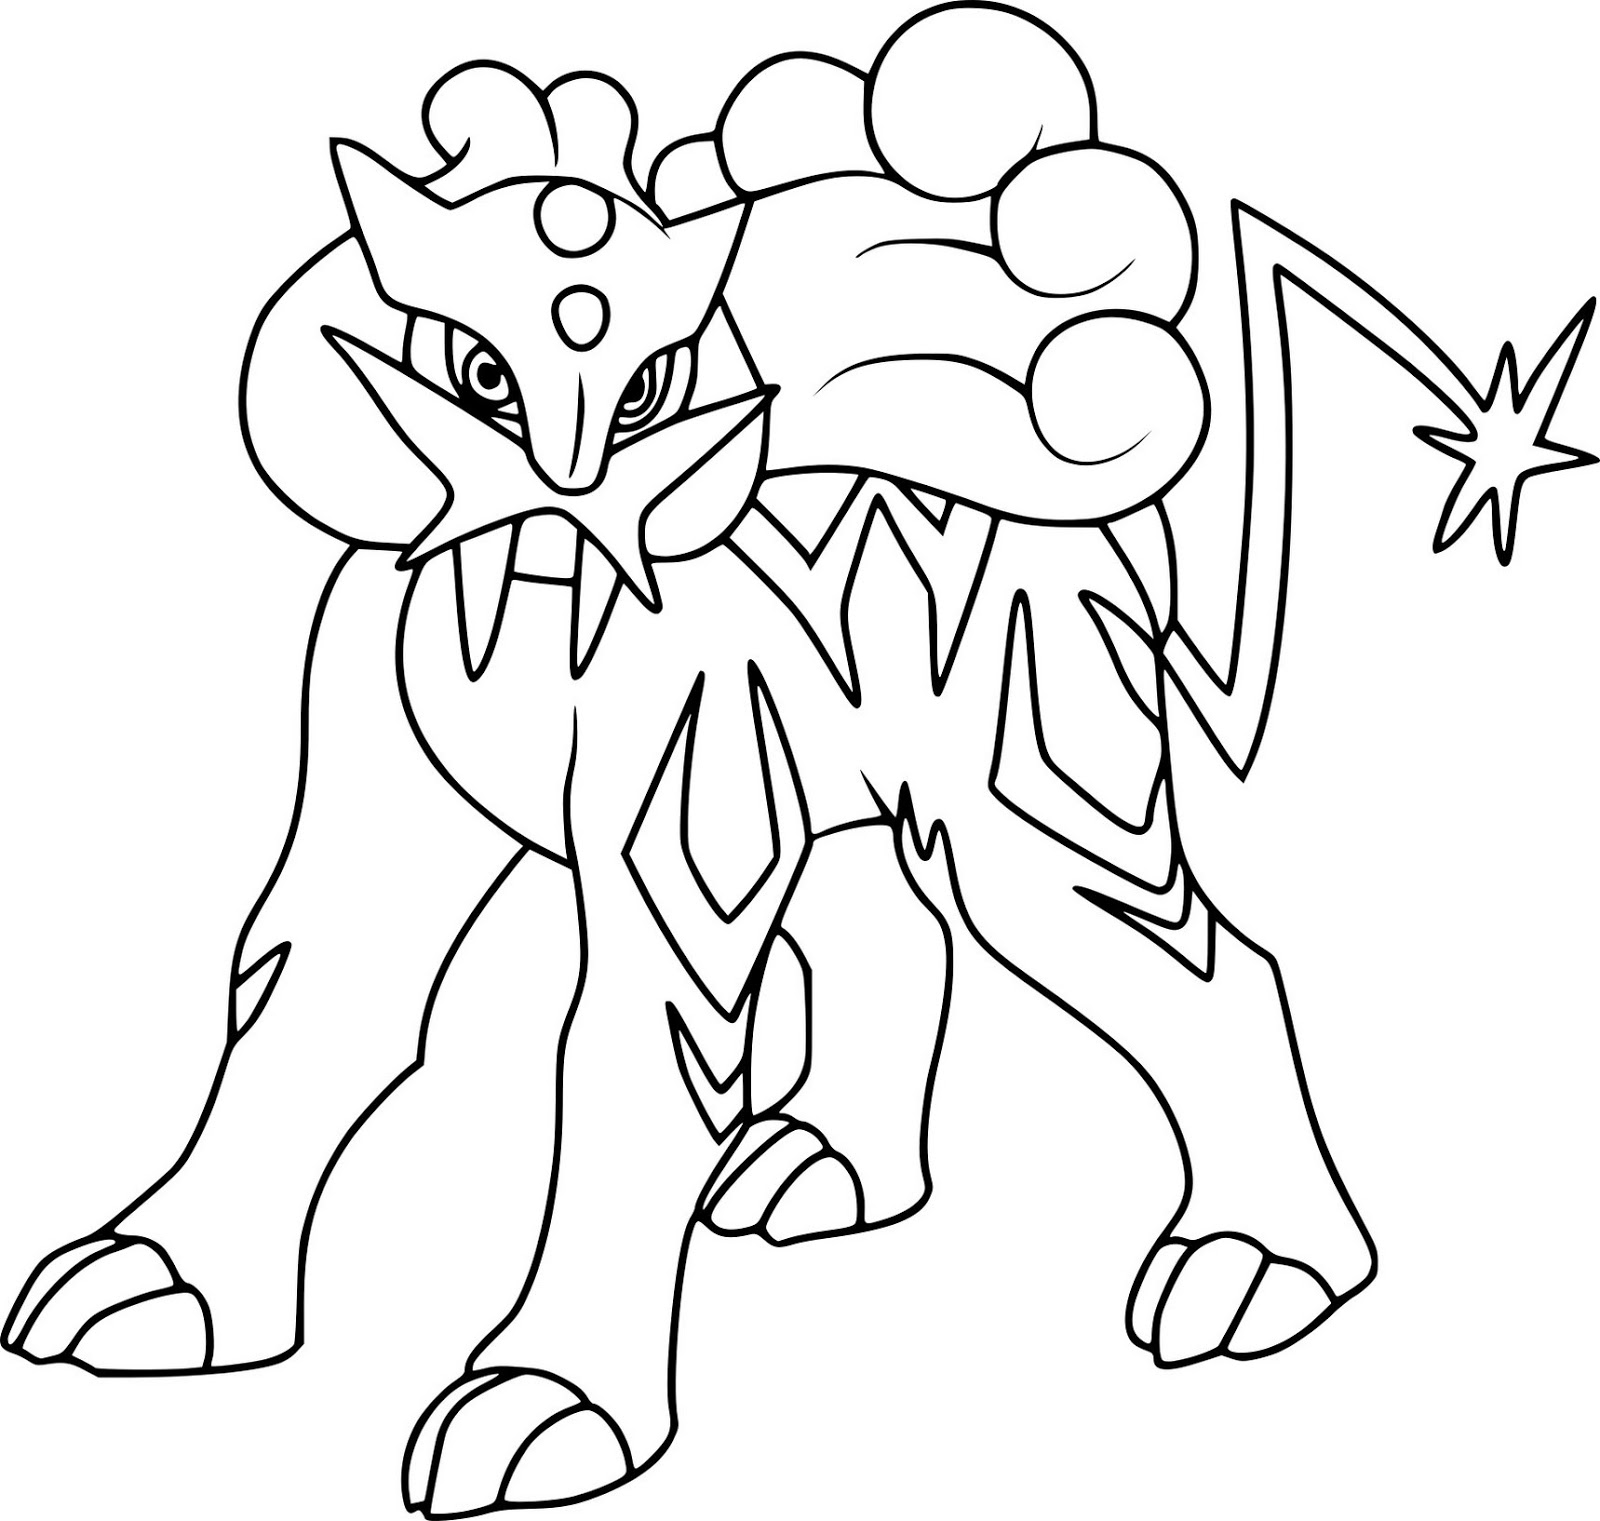 coloring pages pokemon legendary legendary pokemon drawing at getdrawings free download pages coloring legendary pokemon